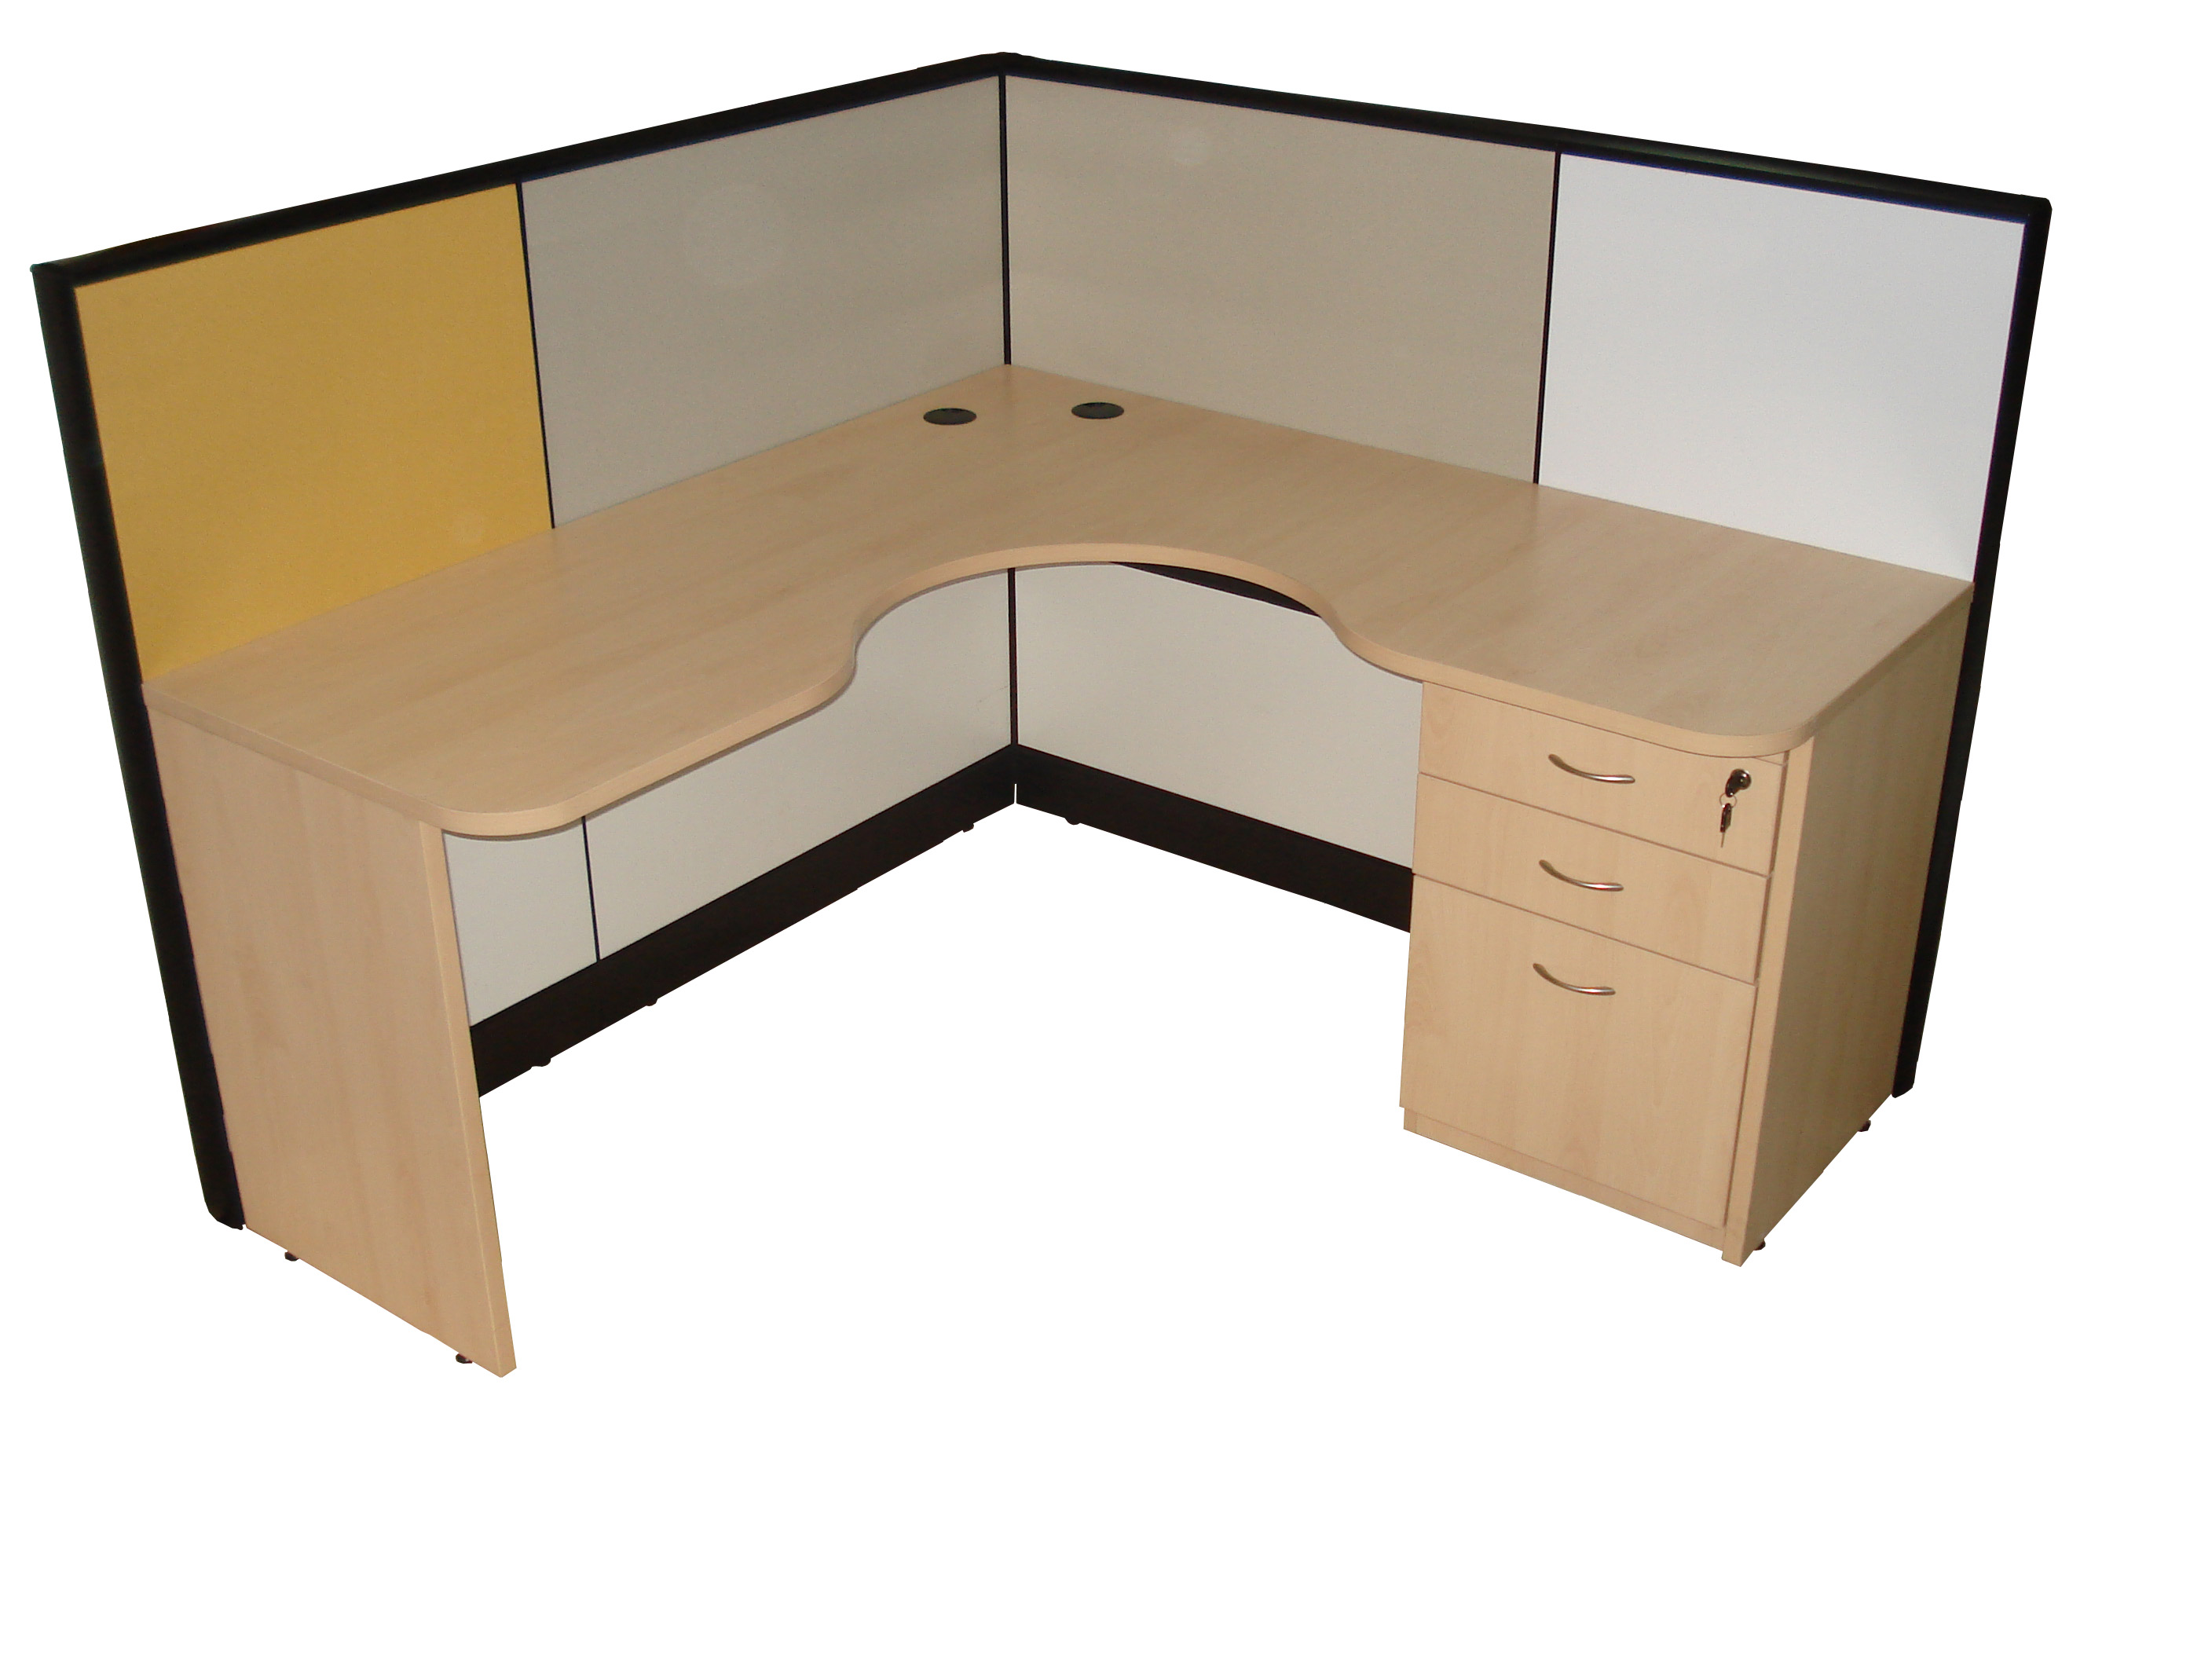 of desk products setting rows control two displays in tol t plaatwerk rooms lowest en e height ergo